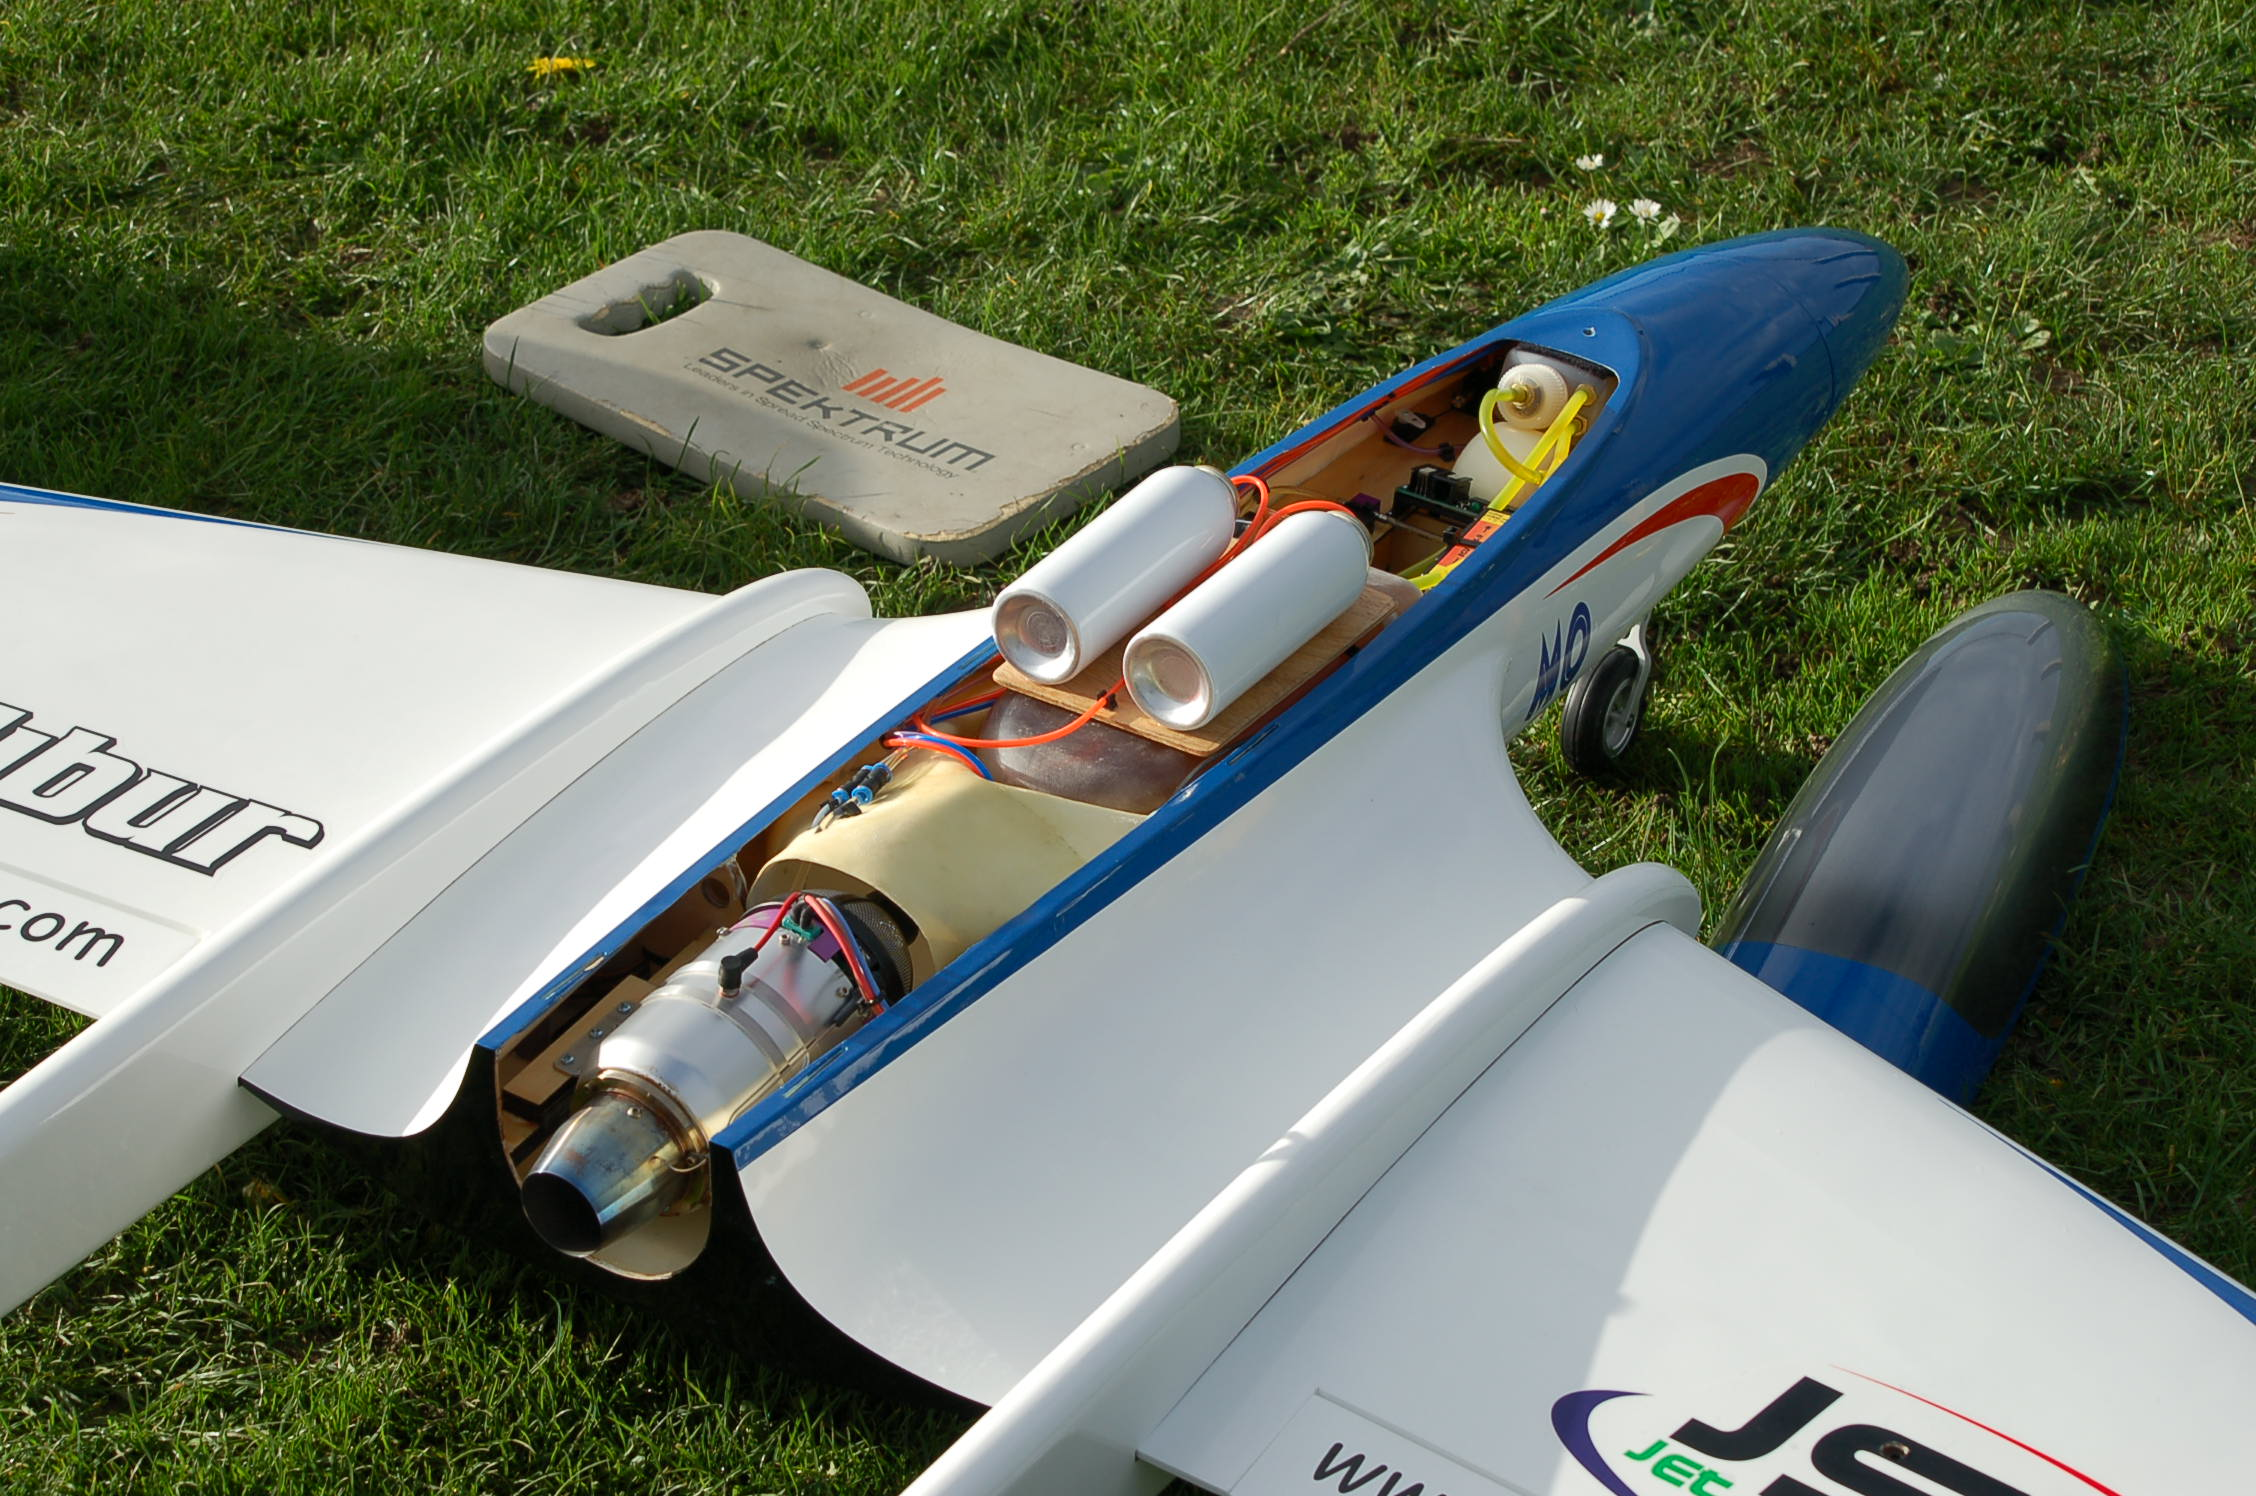 Ripmax Xcalibur Sports Jet Page 8 Rcu Forums Class Size Rc Electric 6 Channel 3d Rtf Helicopter The Exceedrc G2